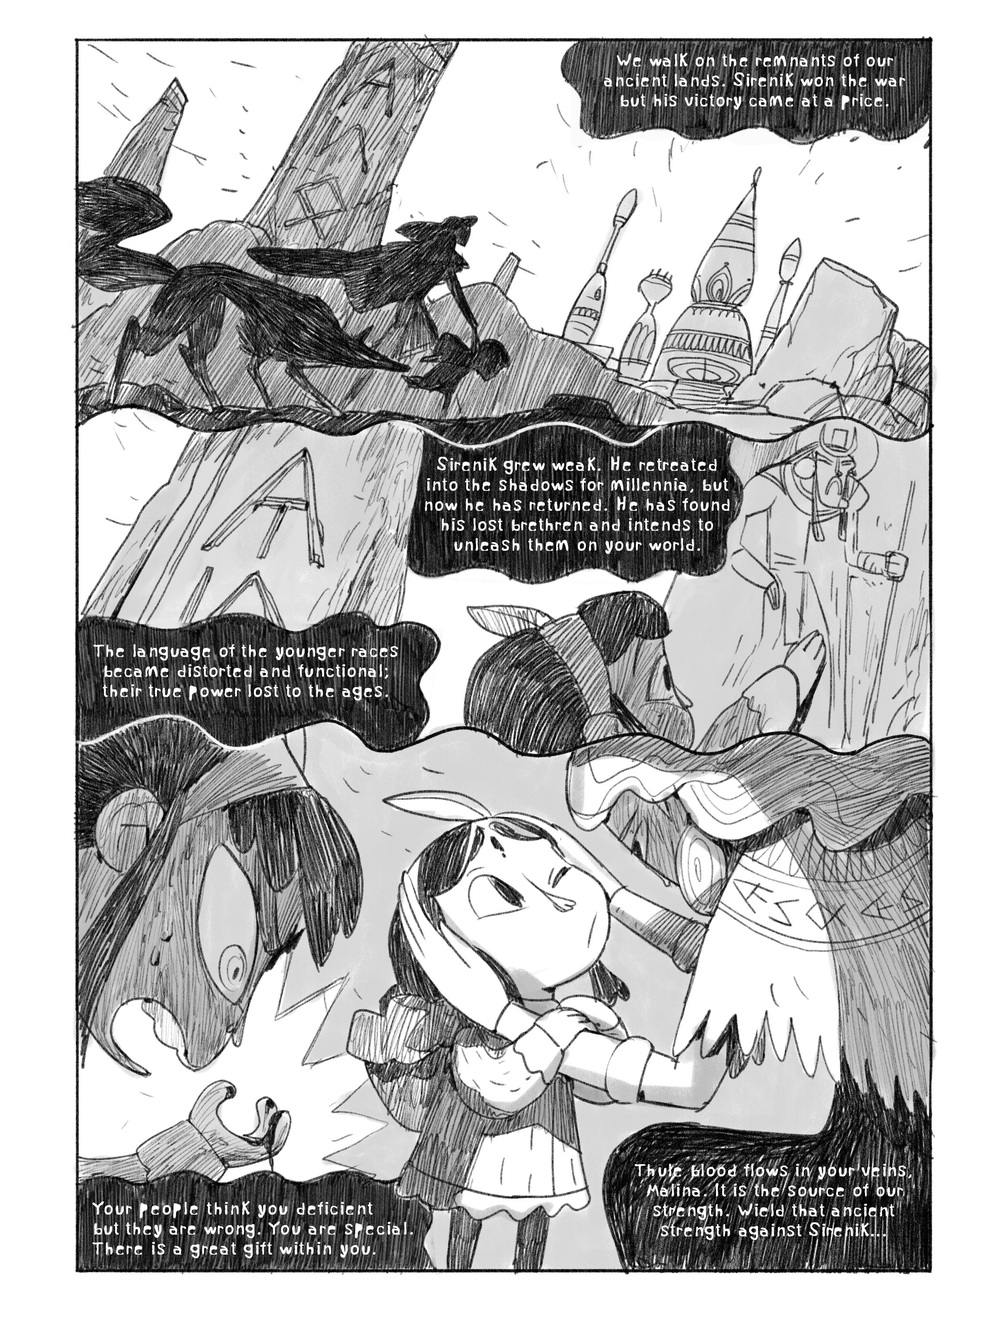 Sticks&Stones_page07_final.jpg